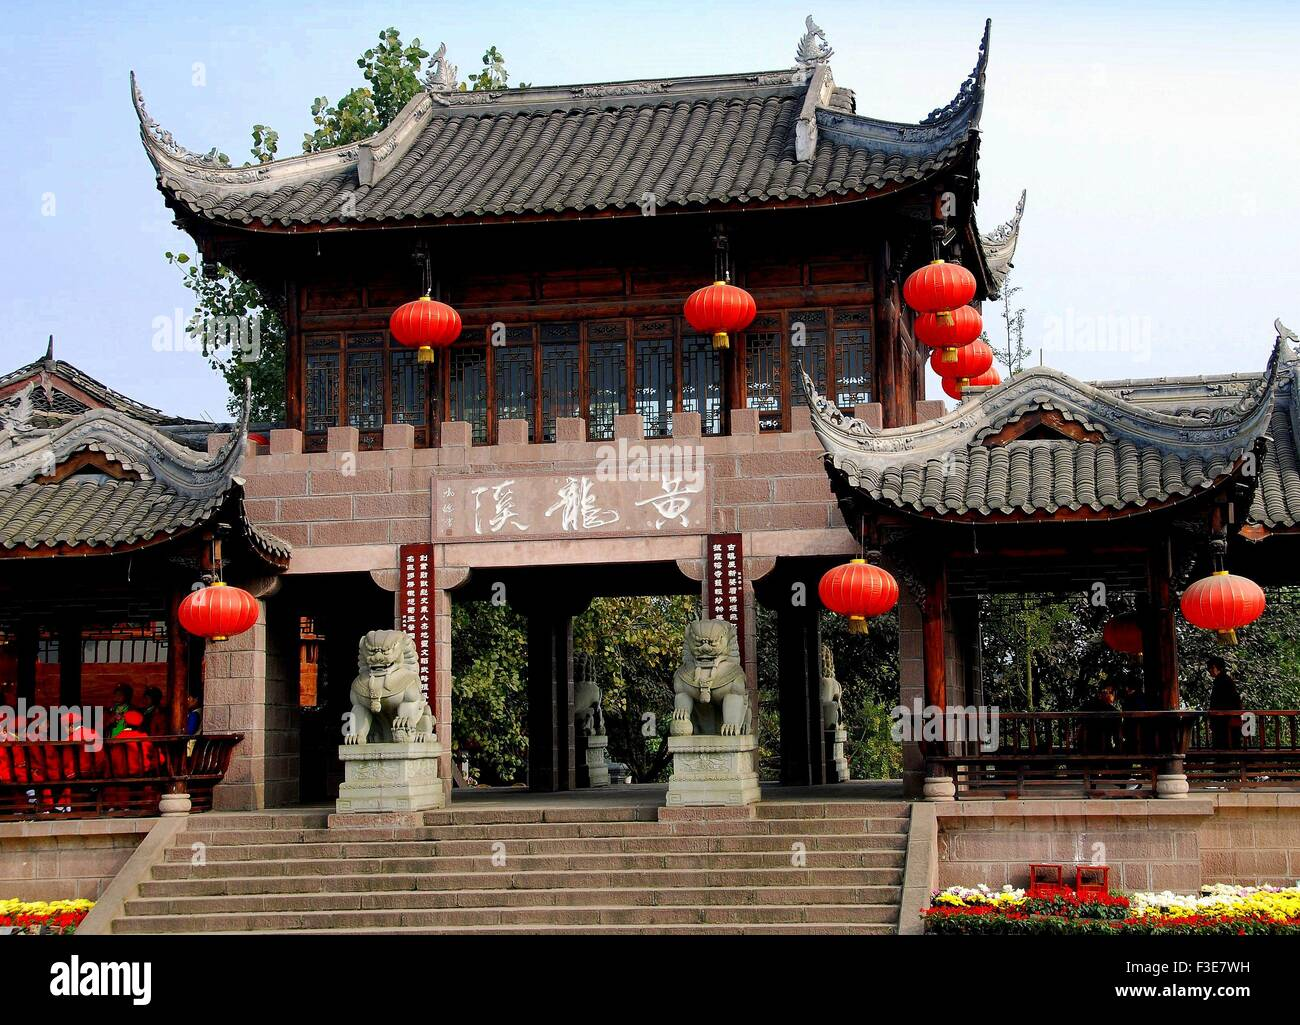 Huang Long Xi, China:  Gate of the Scenic Spot with flying eave roofs and decorative red Chinese lanterns - Stock Image